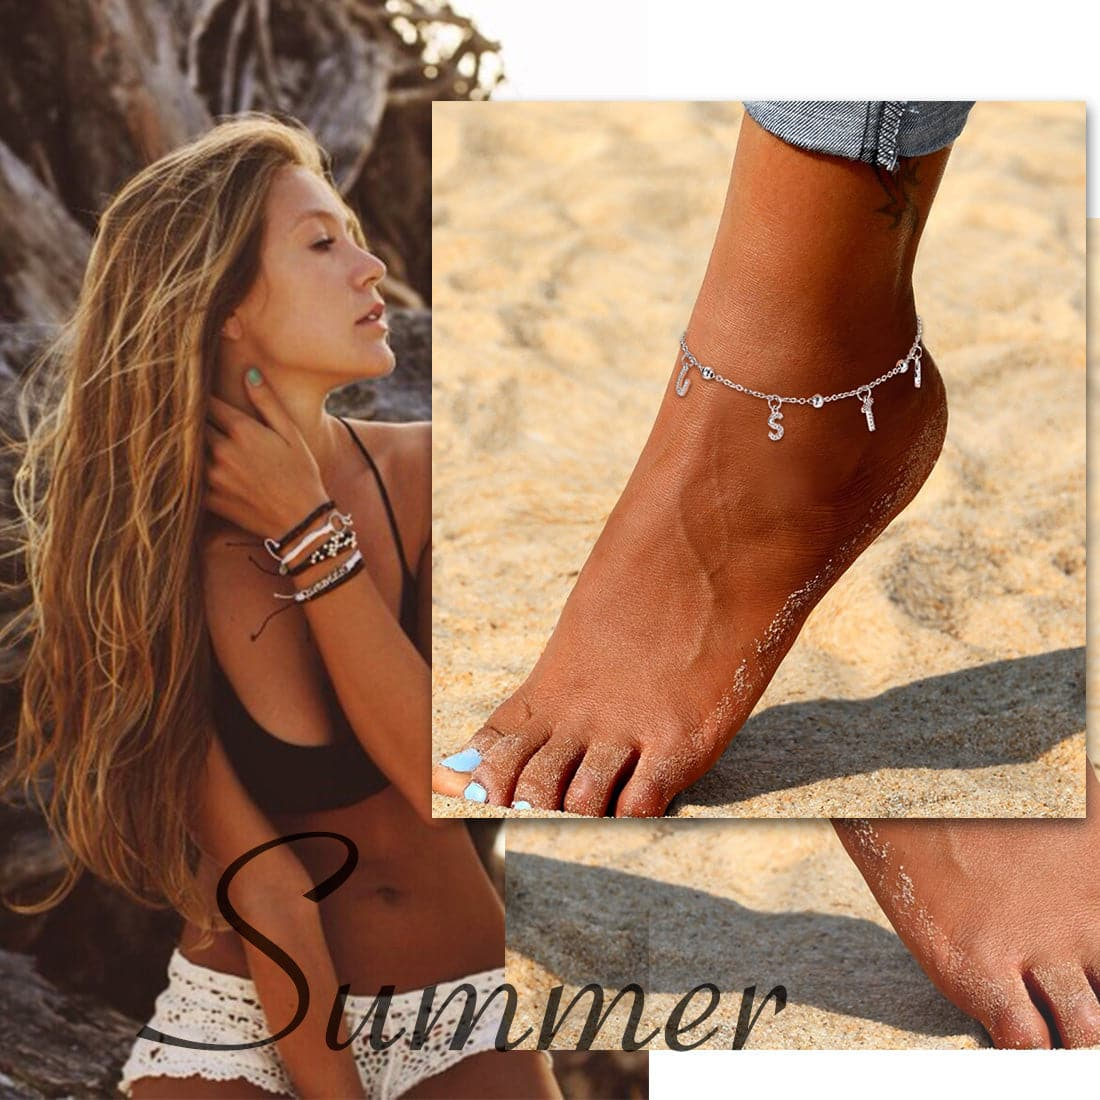 Simple custom 18k gold/platinum plated personalized alphabet charm anklet barefoot bracelet for women girls